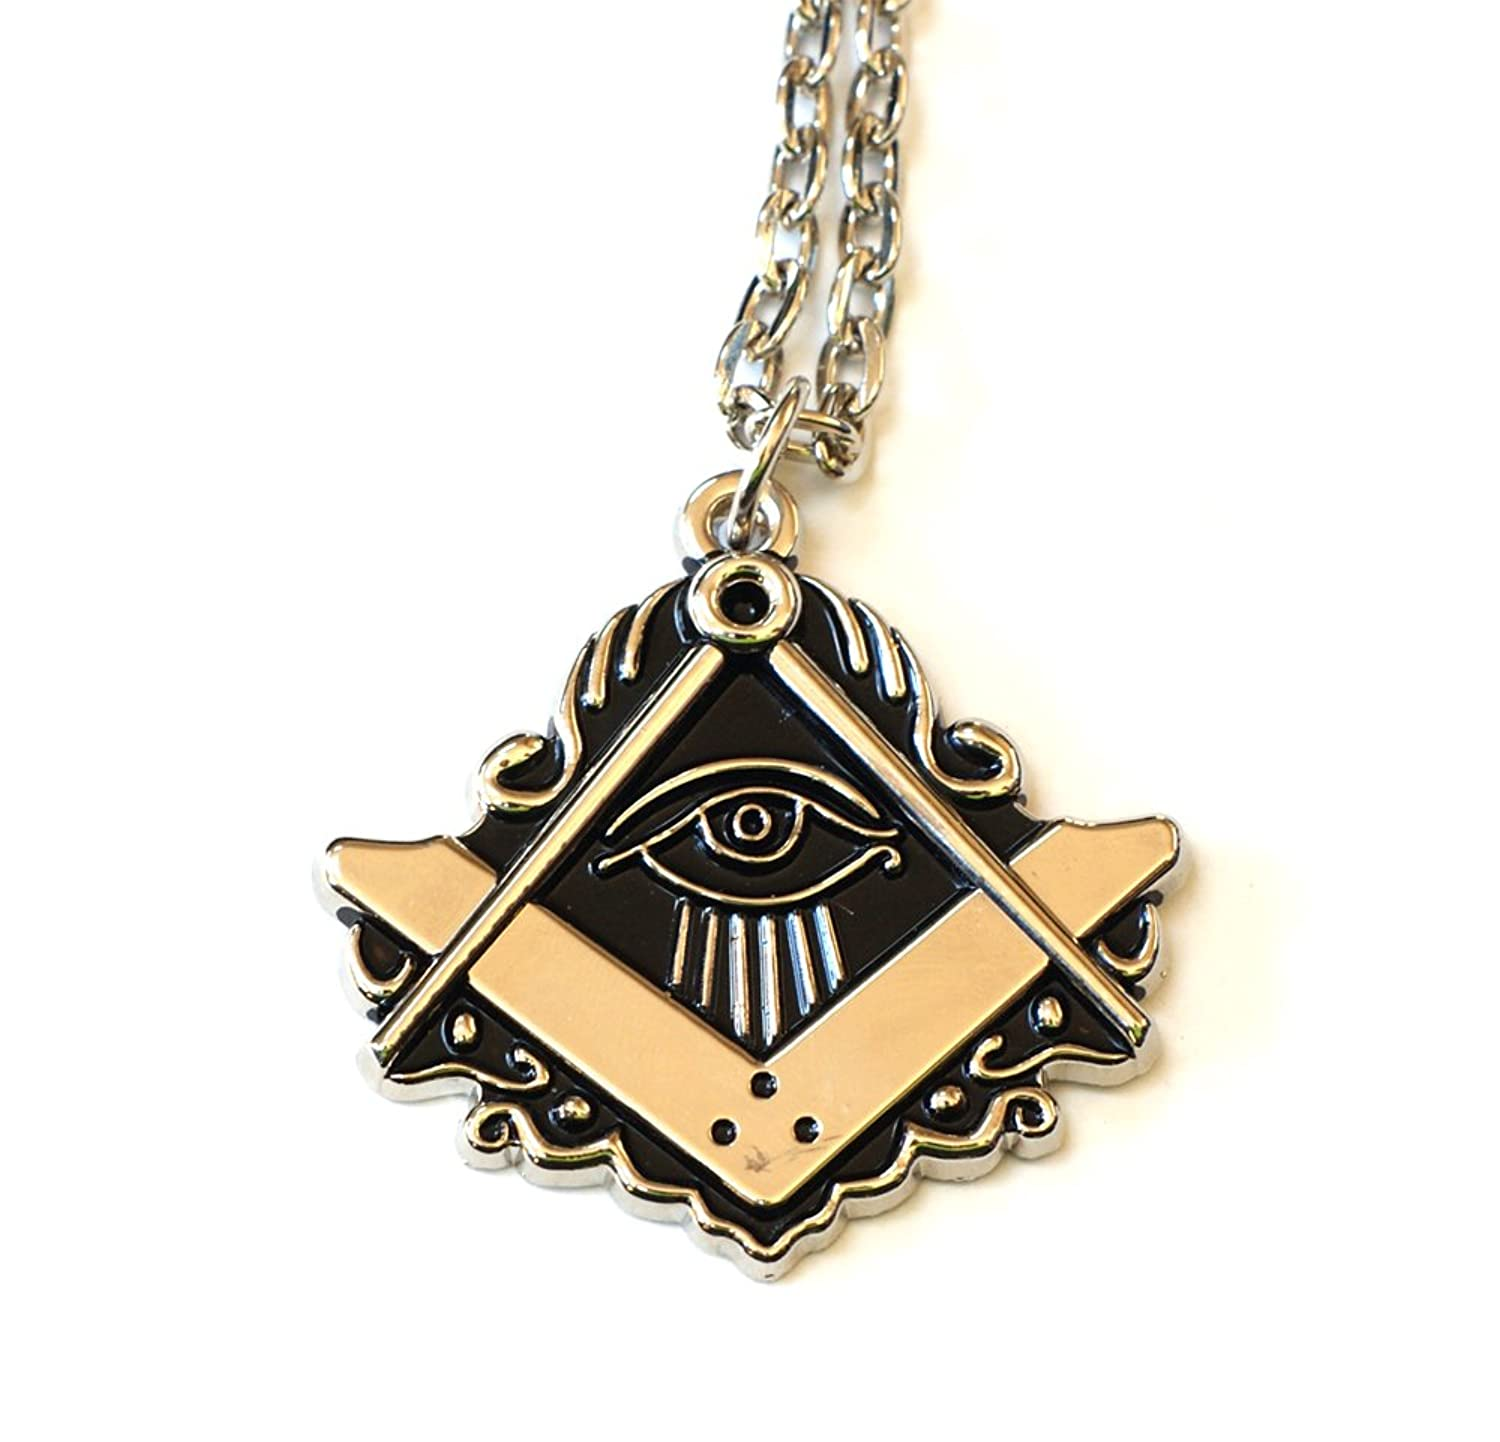 Amazon masonic all seeing eye pendant for the freemason the amazon masonic all seeing eye pendant for the freemason the masonic exchange illuminati necklace jewelry mozeypictures Images